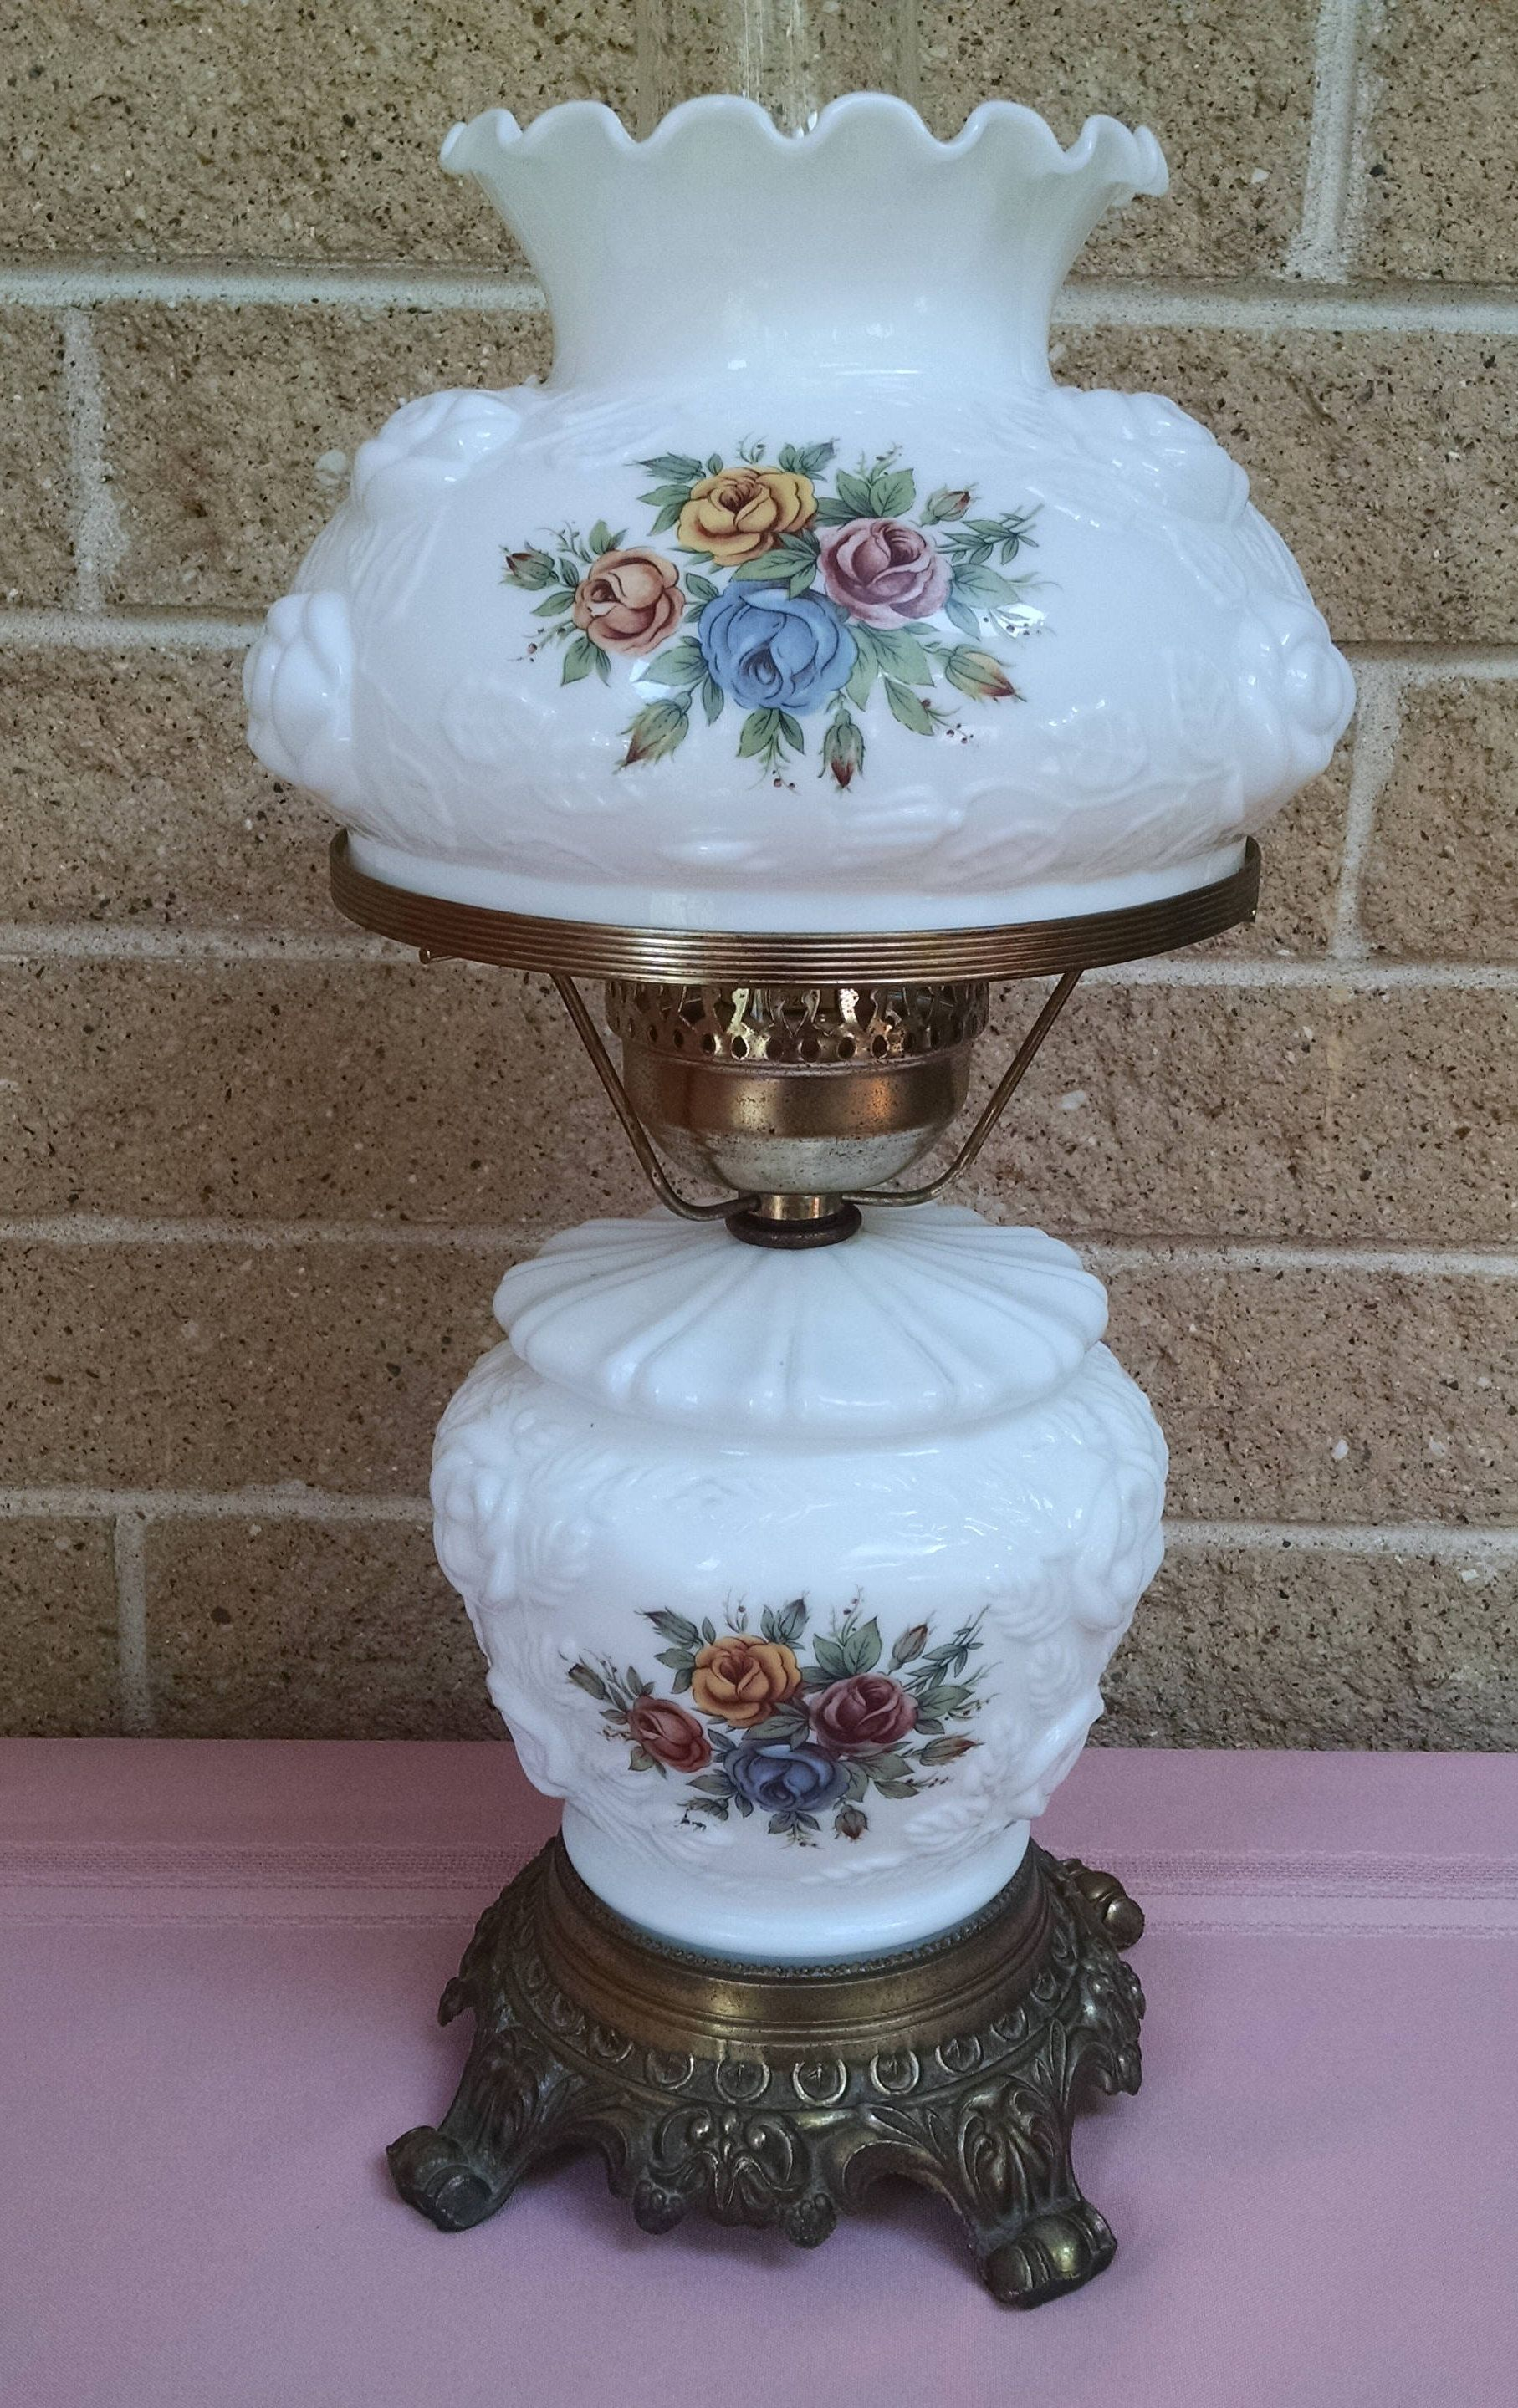 Hurricane Lamp Milk Glass With Embossed Roses And Rose Decals Vintage 193039s Ge Table Fan Needs Rewiring Fans Etsy Electrical Hedco Nyc 3 Way Lighting By Classyvintageglass On